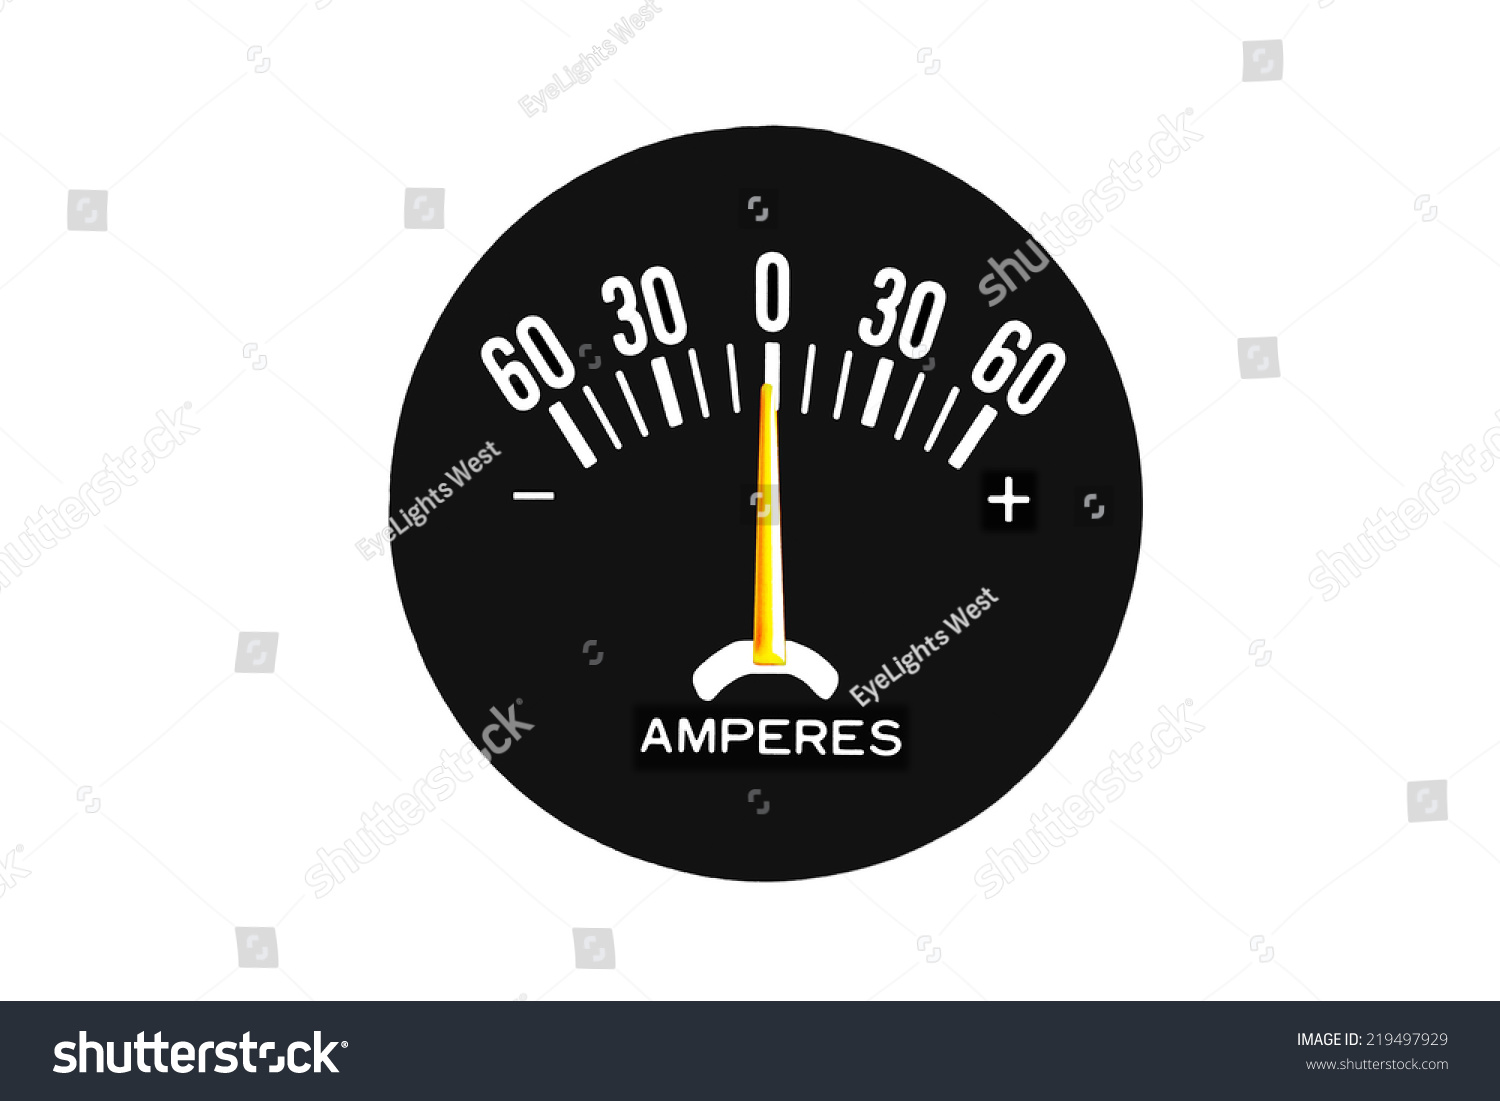 Analog Amp Meter Ammeter Amperemeter Measures Stock Photo Edit Now Volt Meters Ampere With Pic Or Dc Direct Current In Units Called